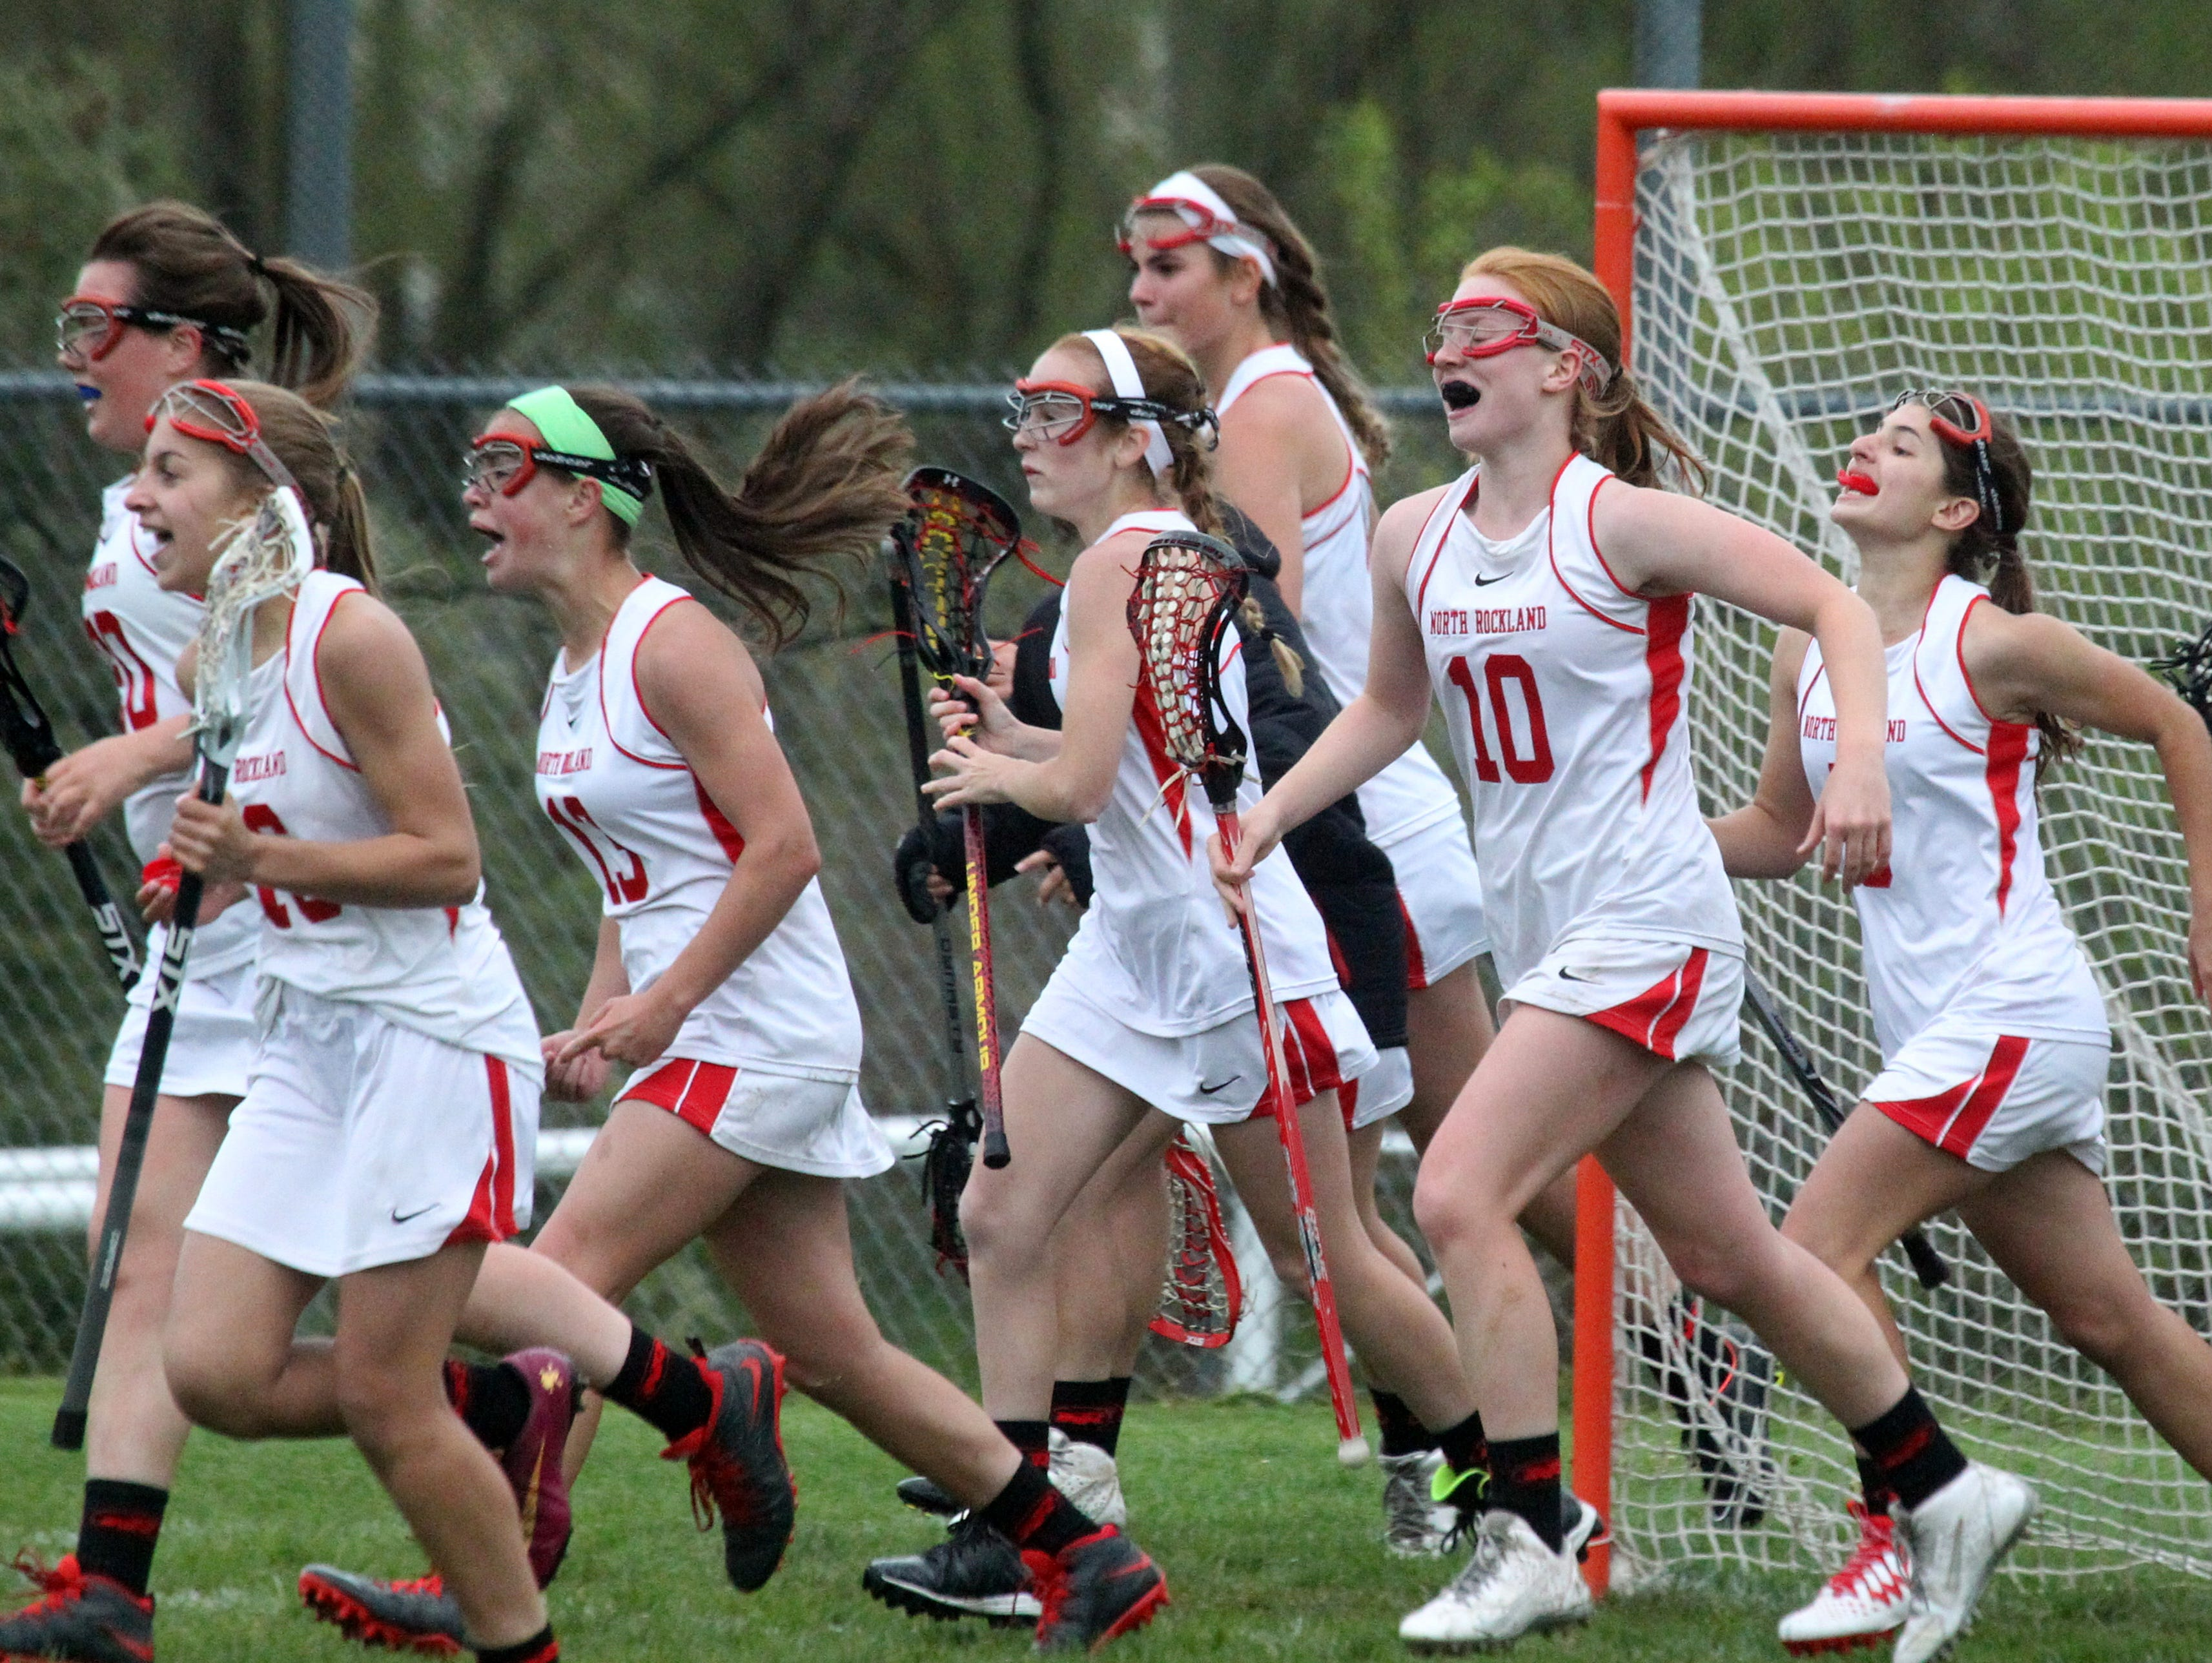 North Rockland celebrates their 8-7 win over Suffern May 4, 2016.